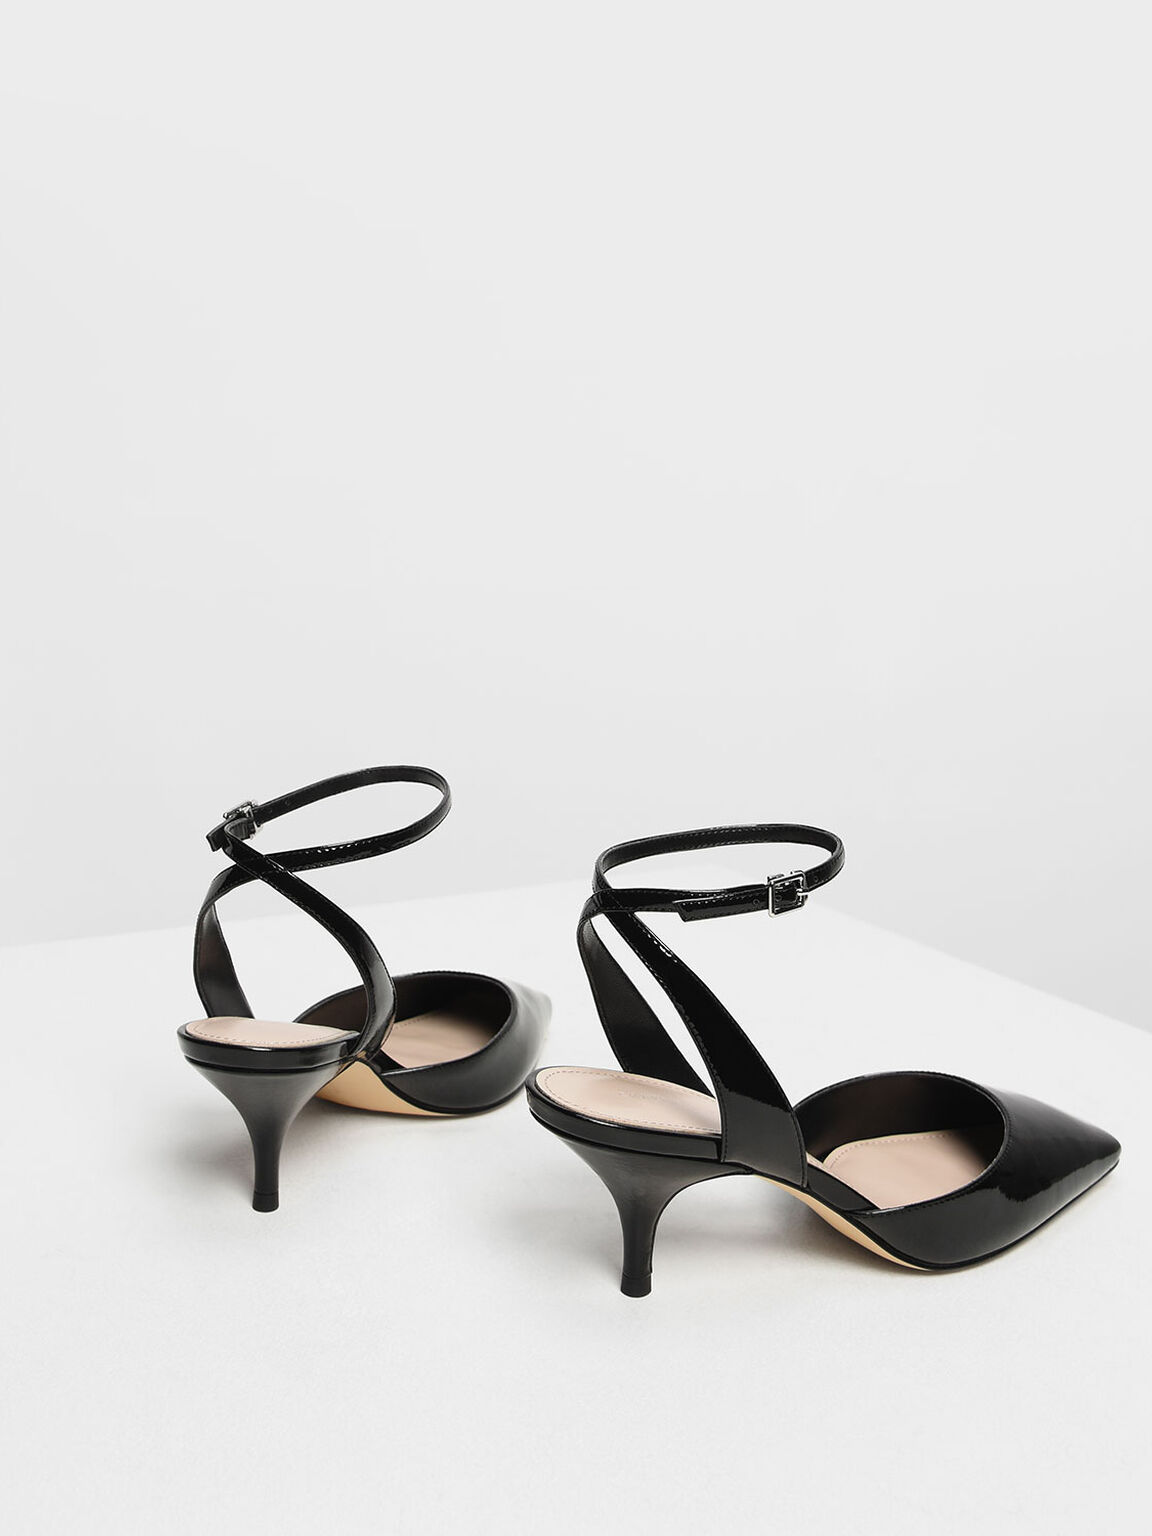 Square Toe Ankle Strap Heels, Black, hi-res